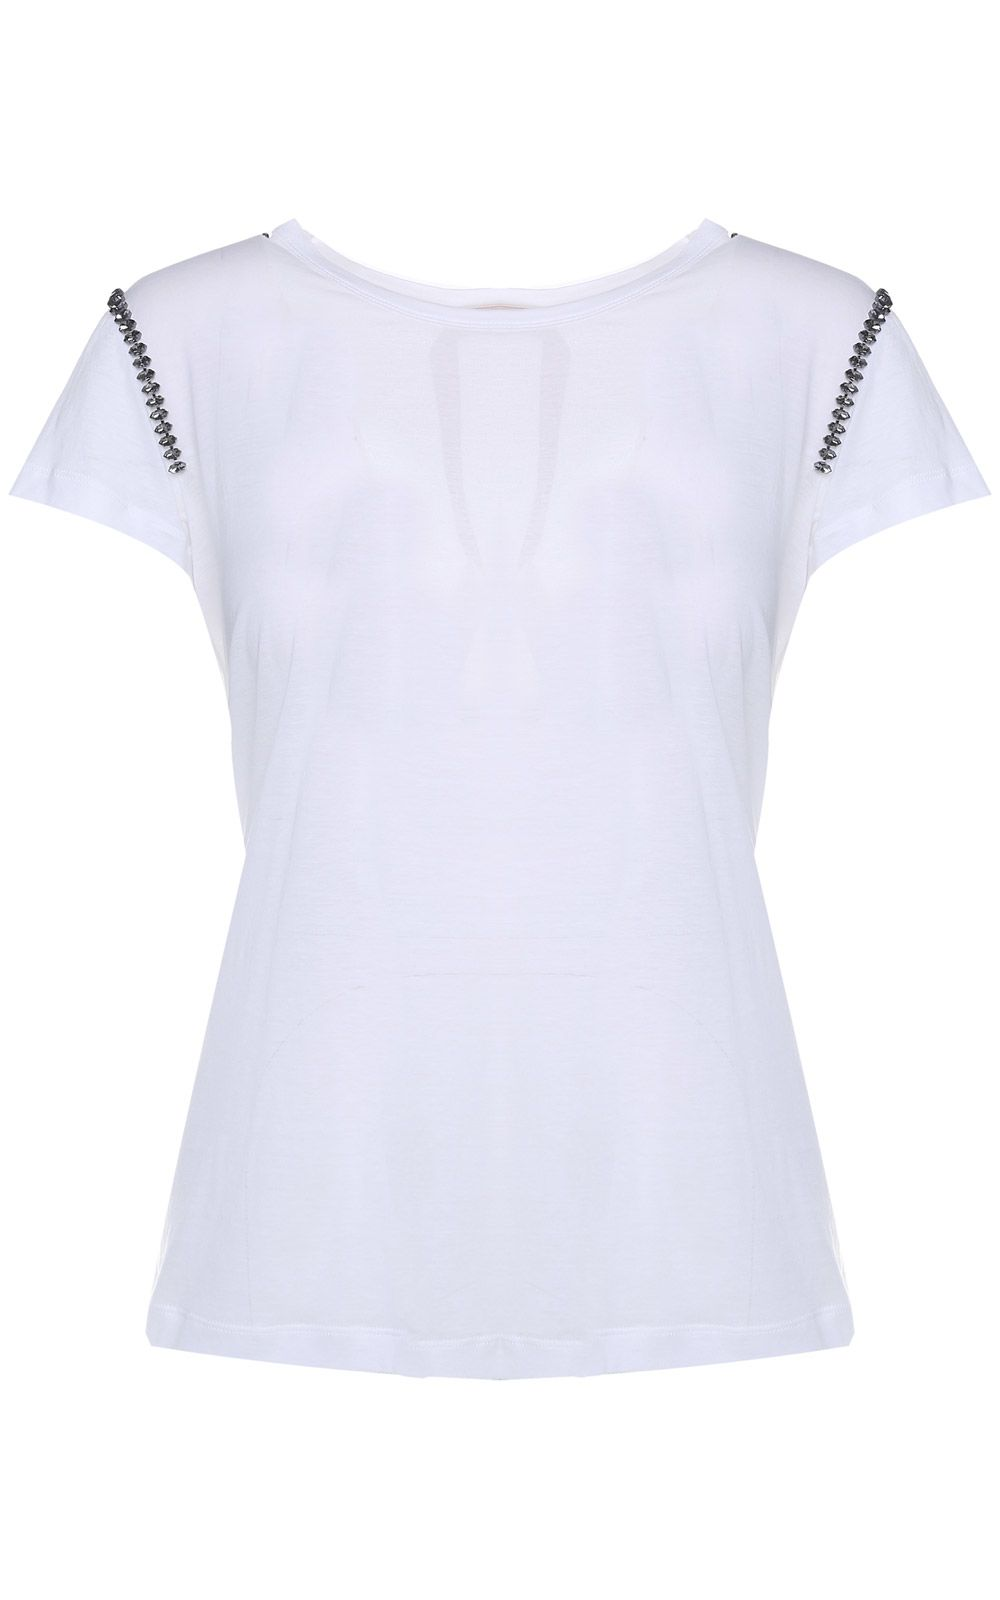 Crystal-embellished cotton-jersey t-shirt N°21 Sale Many Kinds Of Cheap Price Enjoy Sale Online Cheap With Mastercard Sale Marketable lGVCBPEJ9b